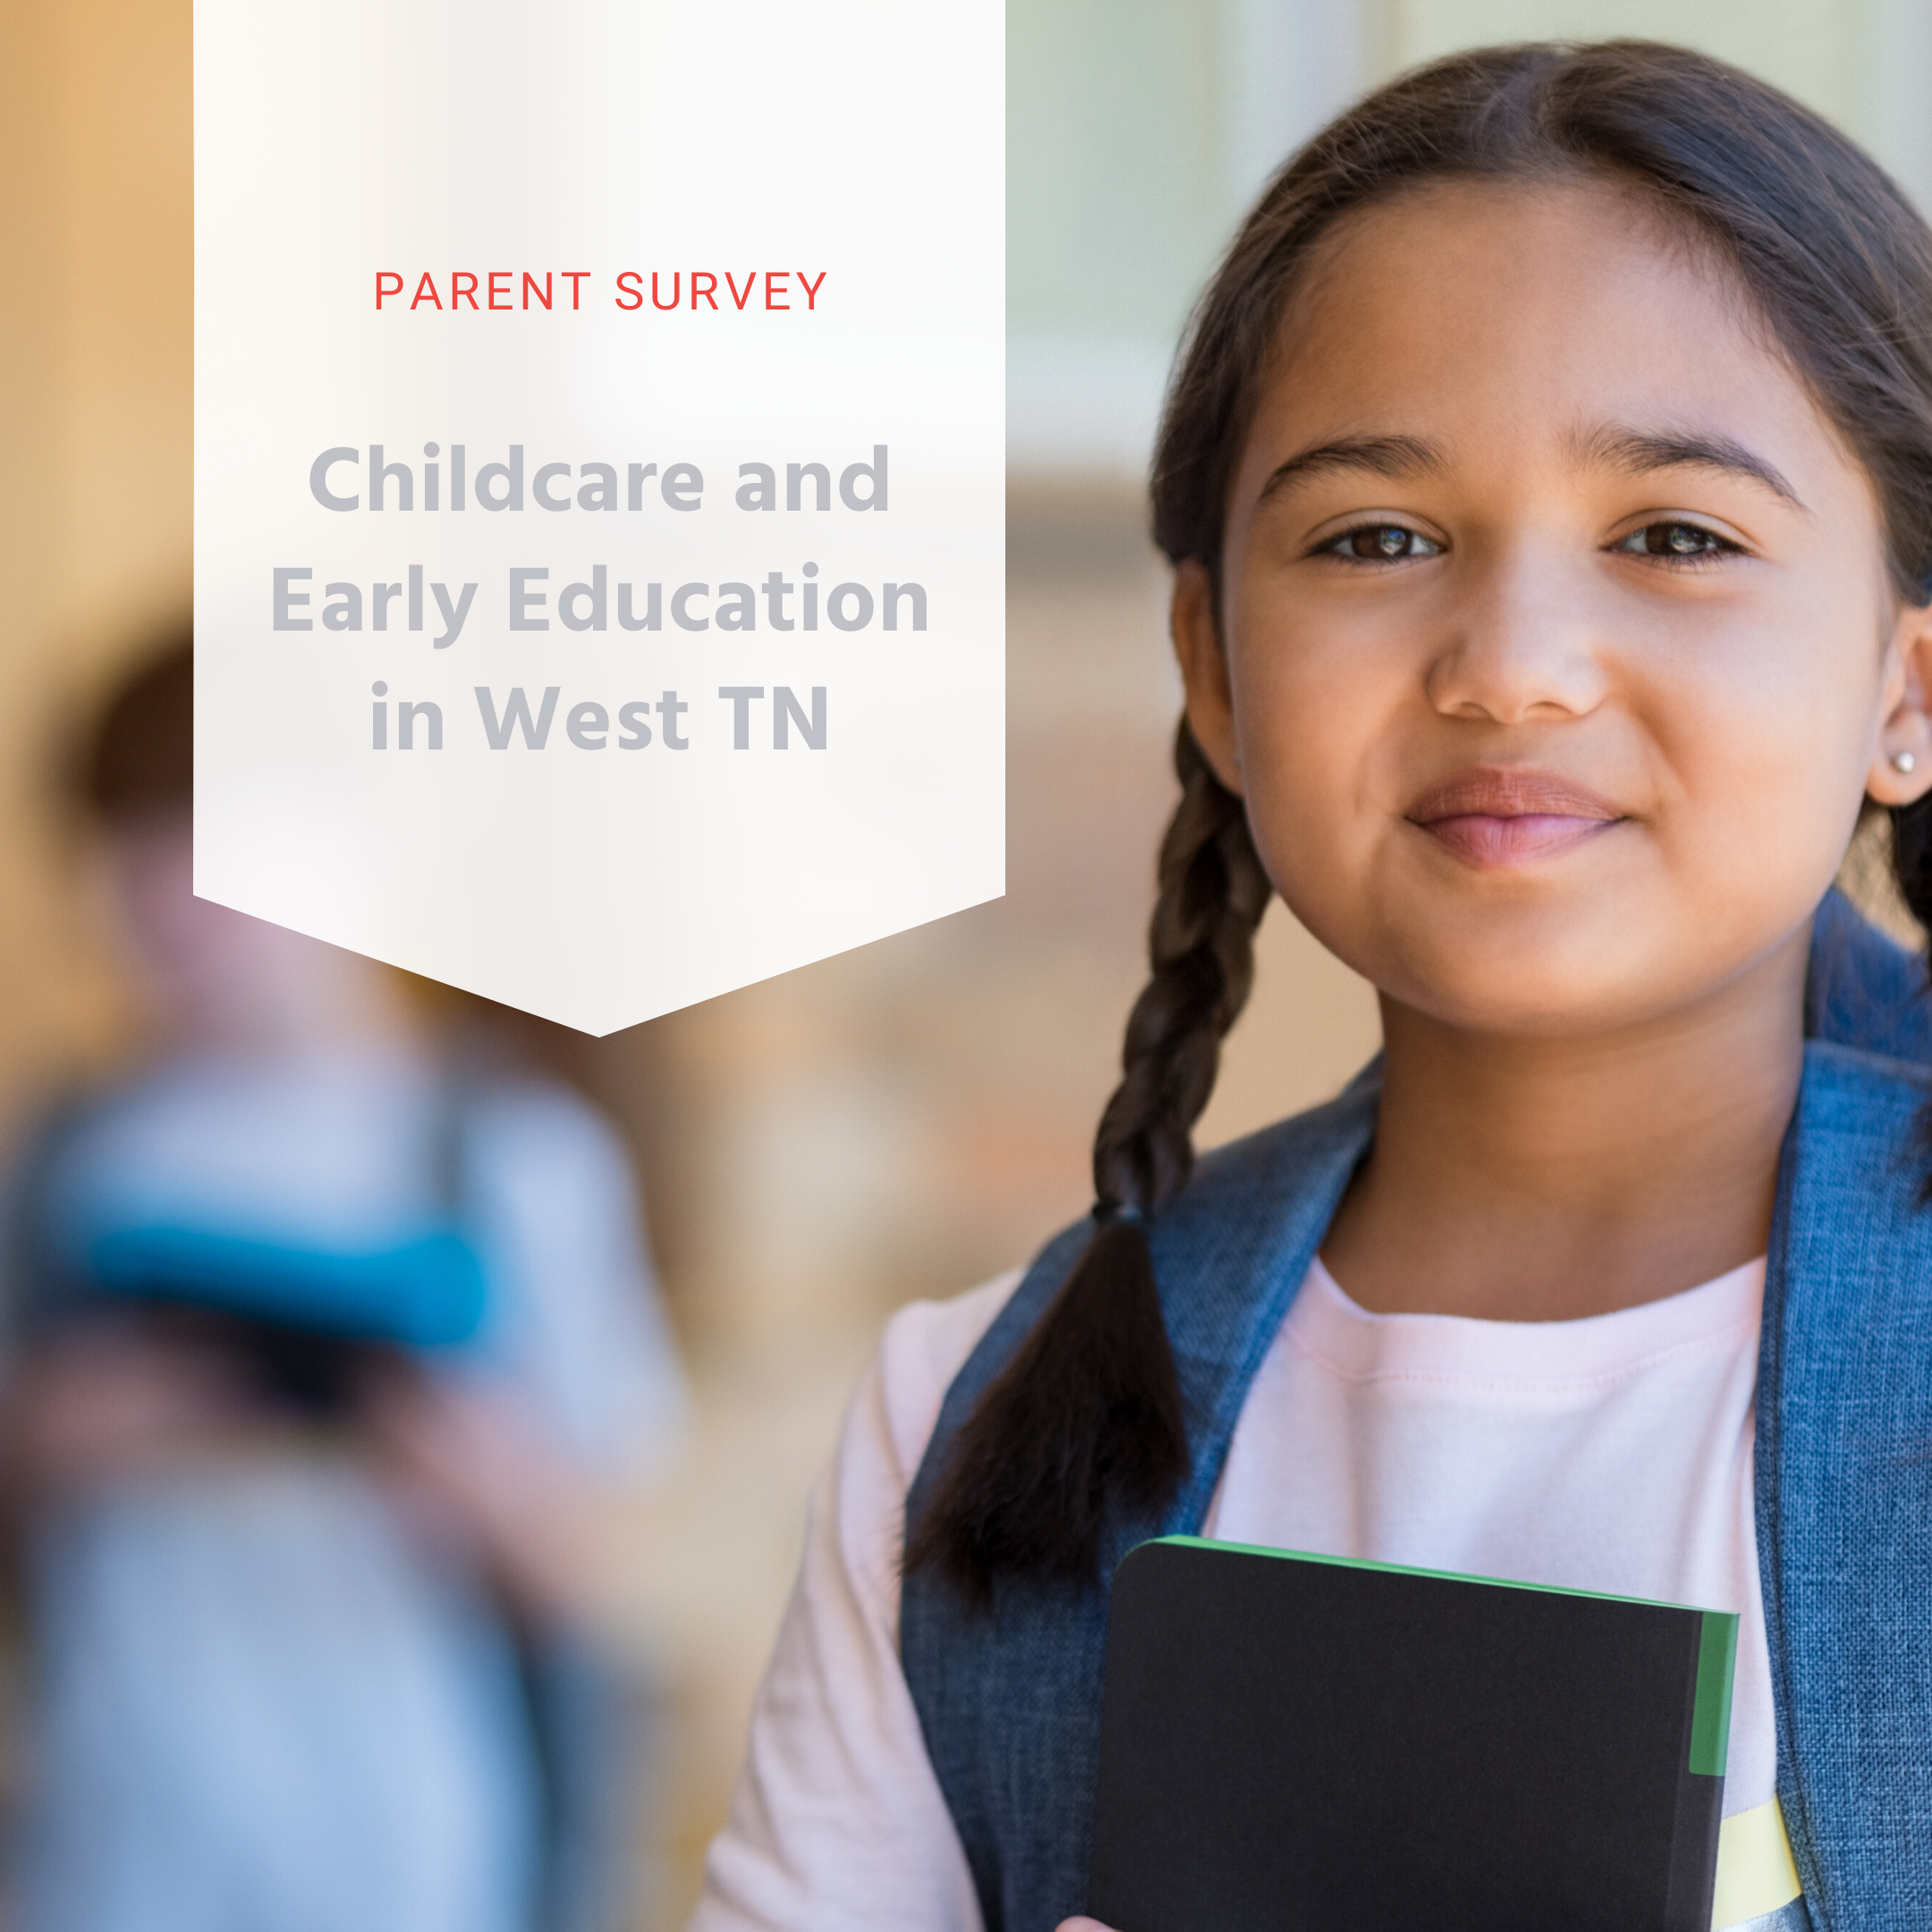 Parent Survey: Childcare and Early Education in West TN